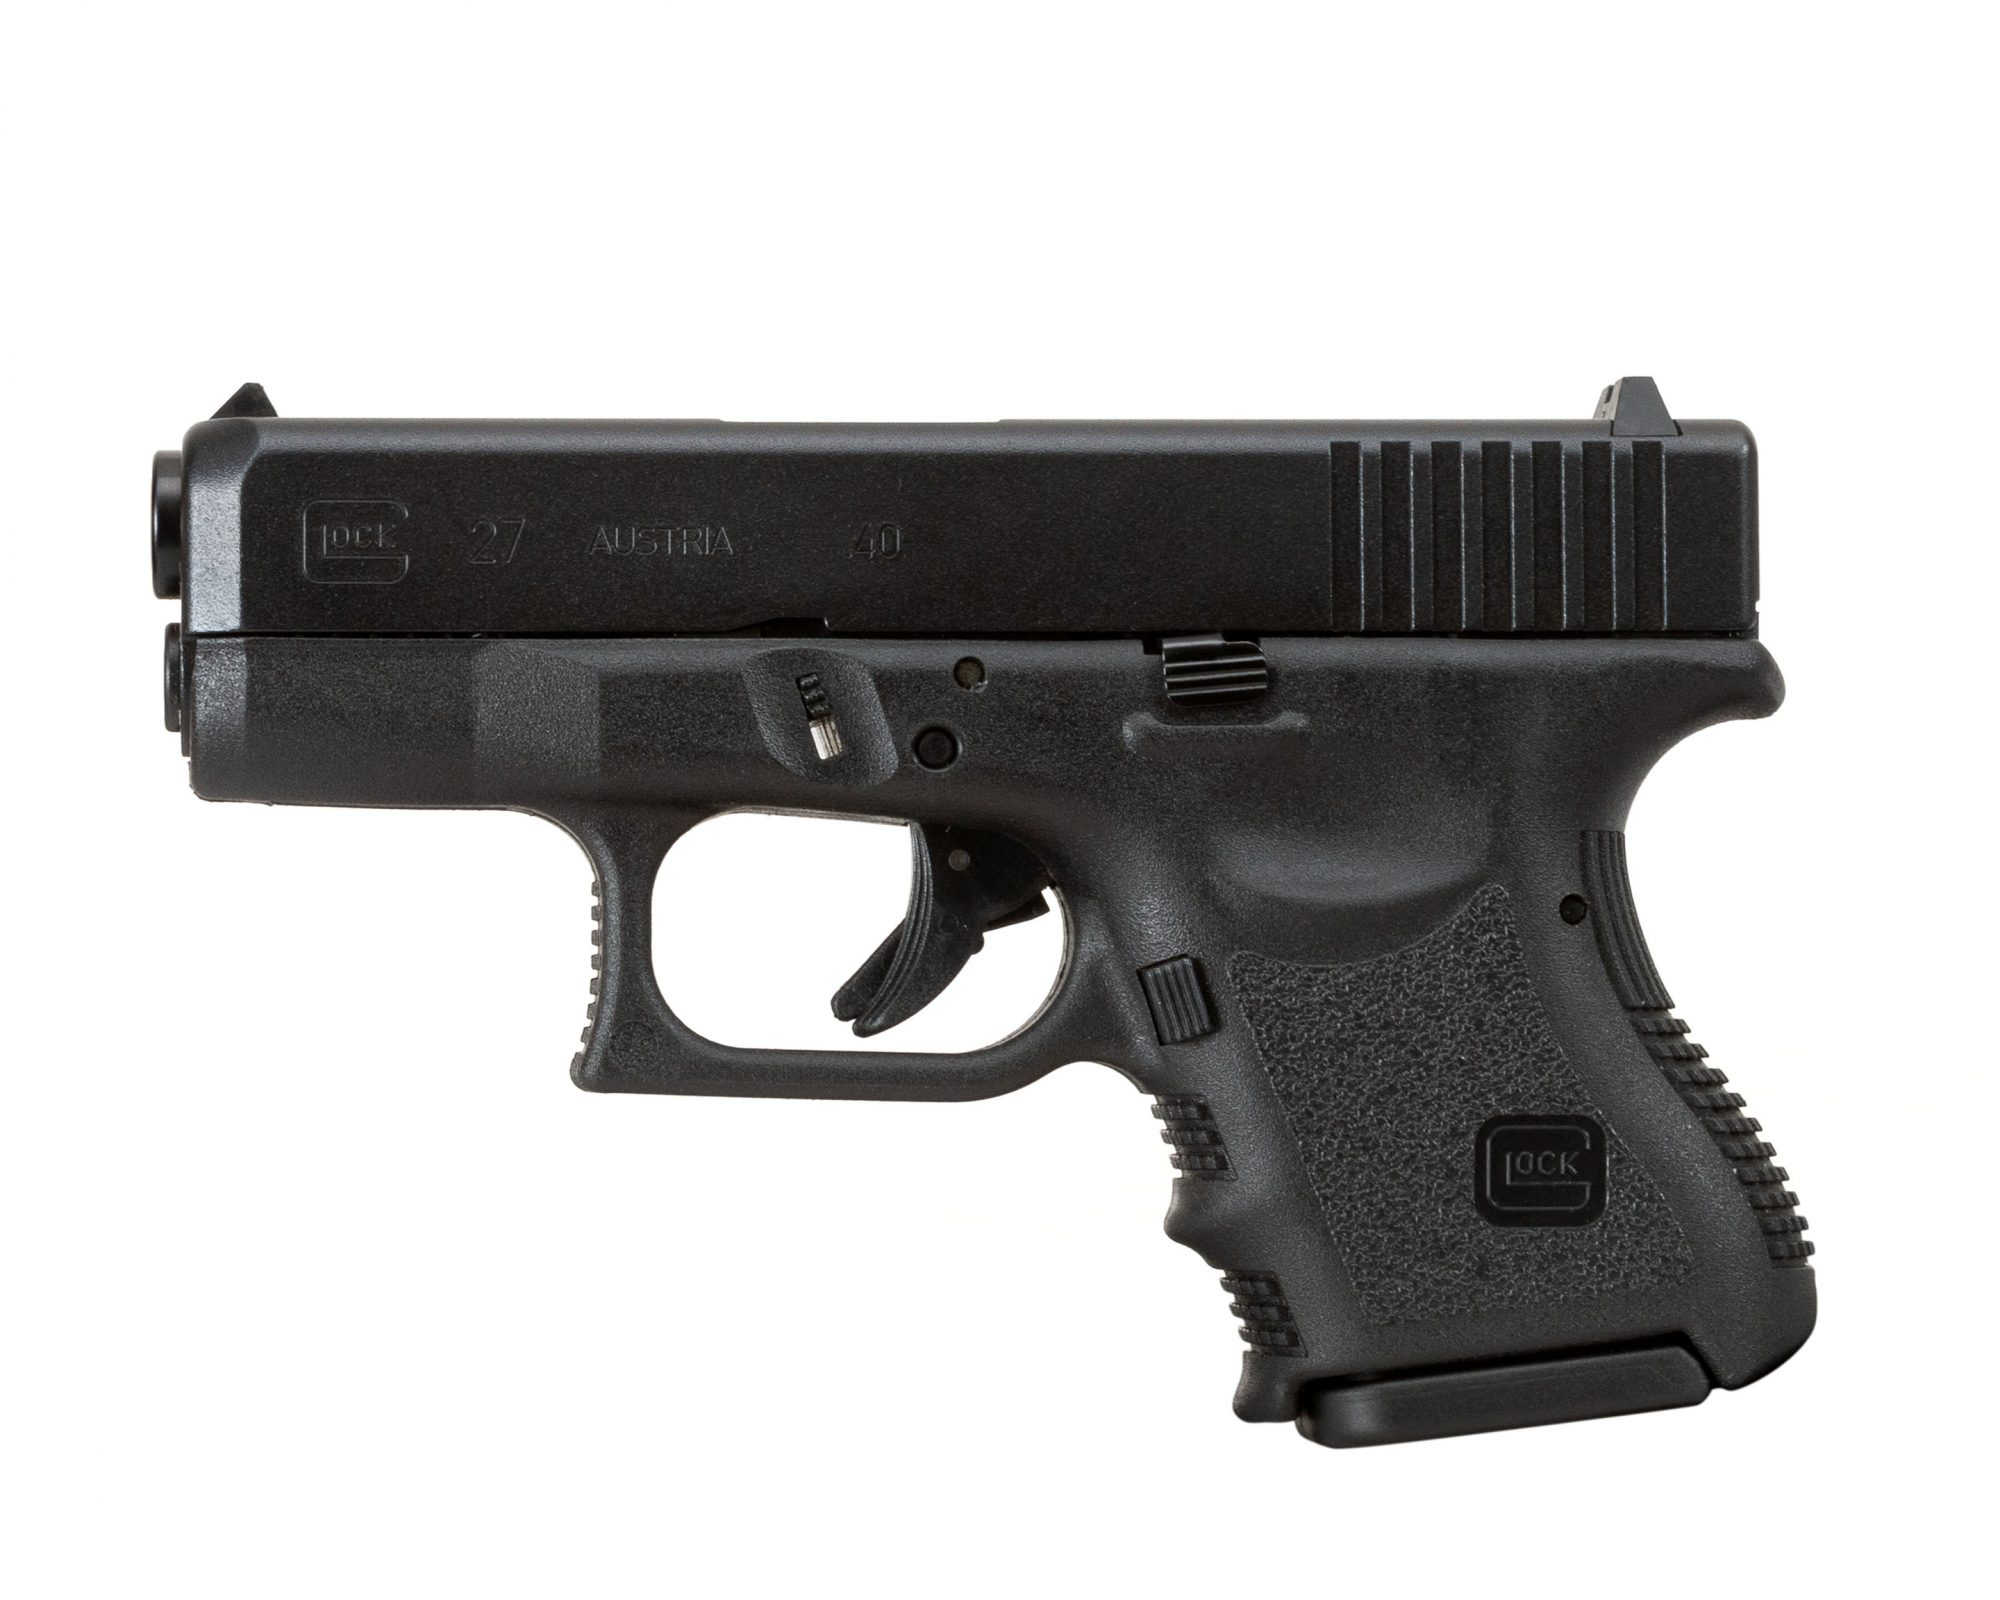 Photo of a pre-owned Glock 27, for sale by Turnbull Restoration of Bloomfield, NY